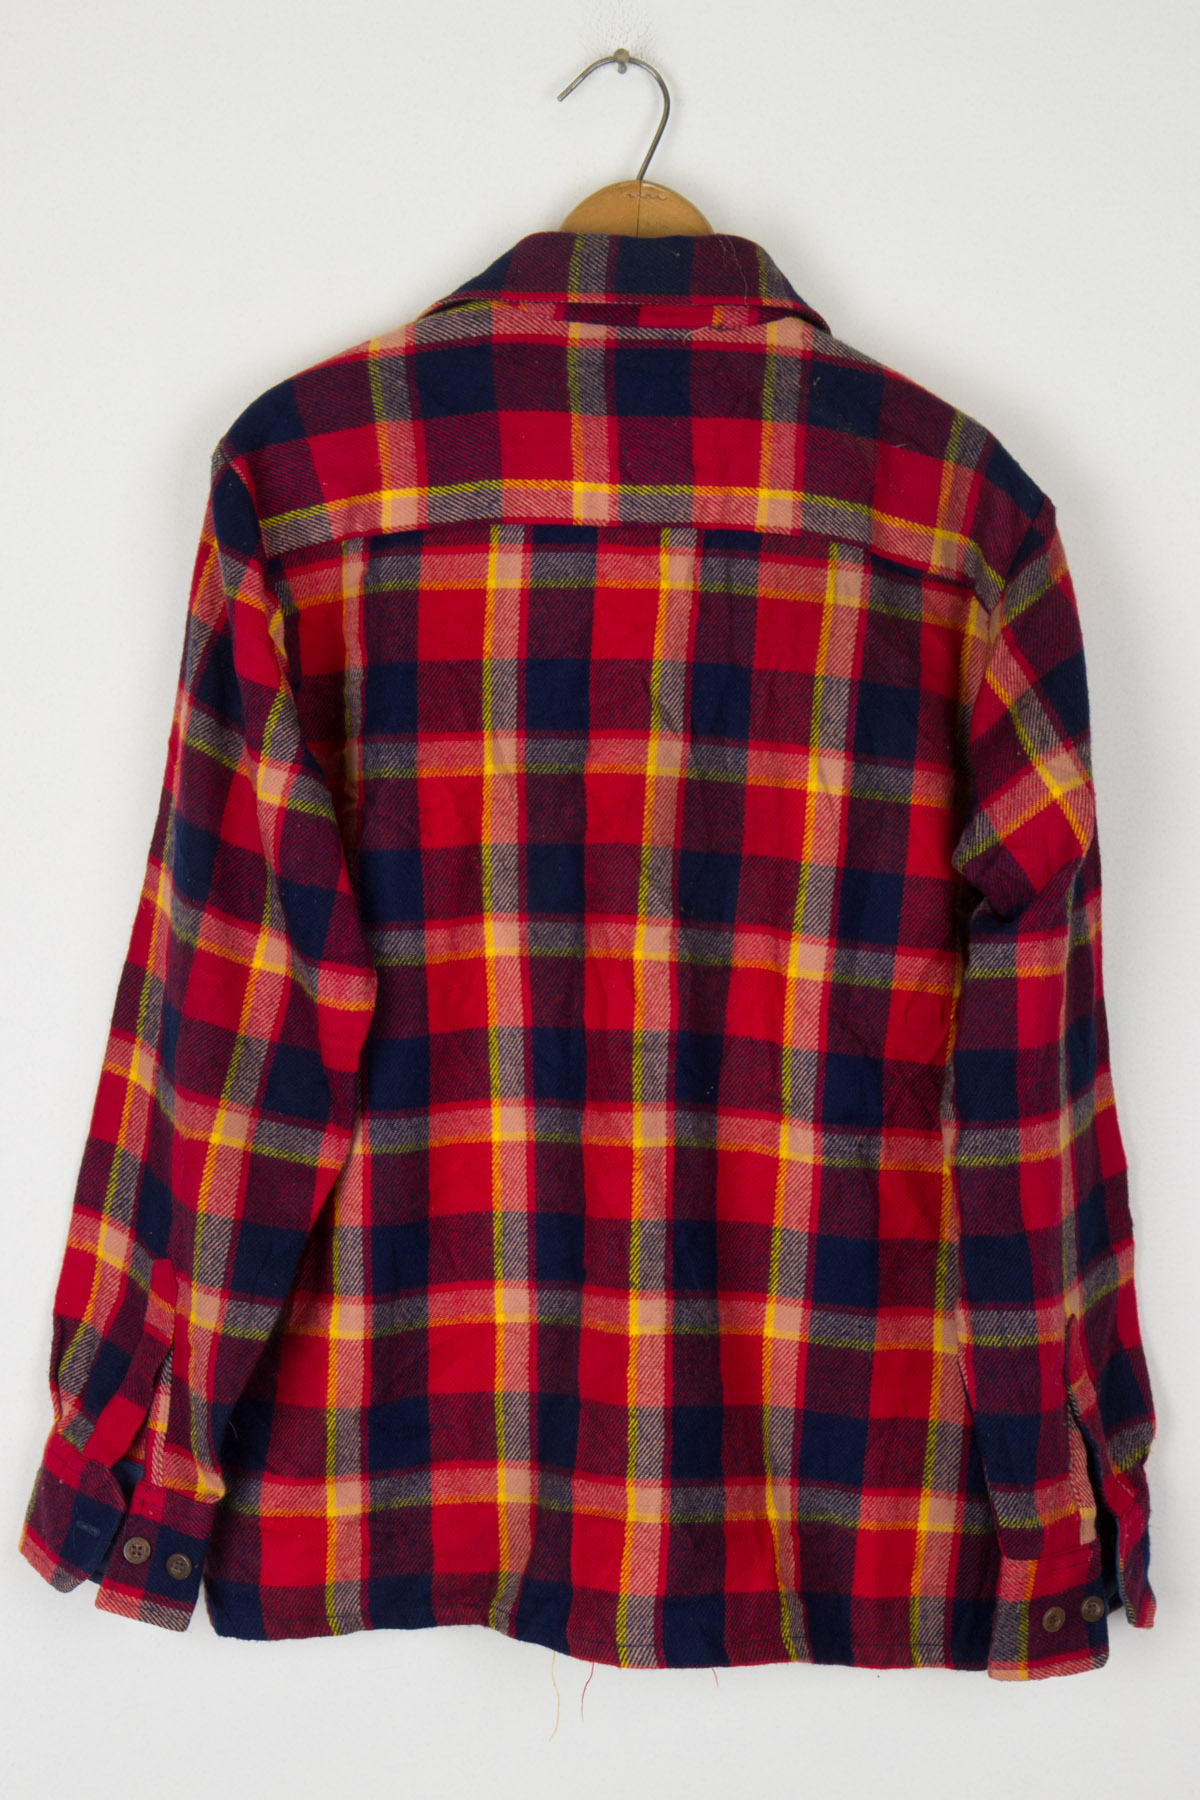 Alvin Josef Plaid Flannel Button Up